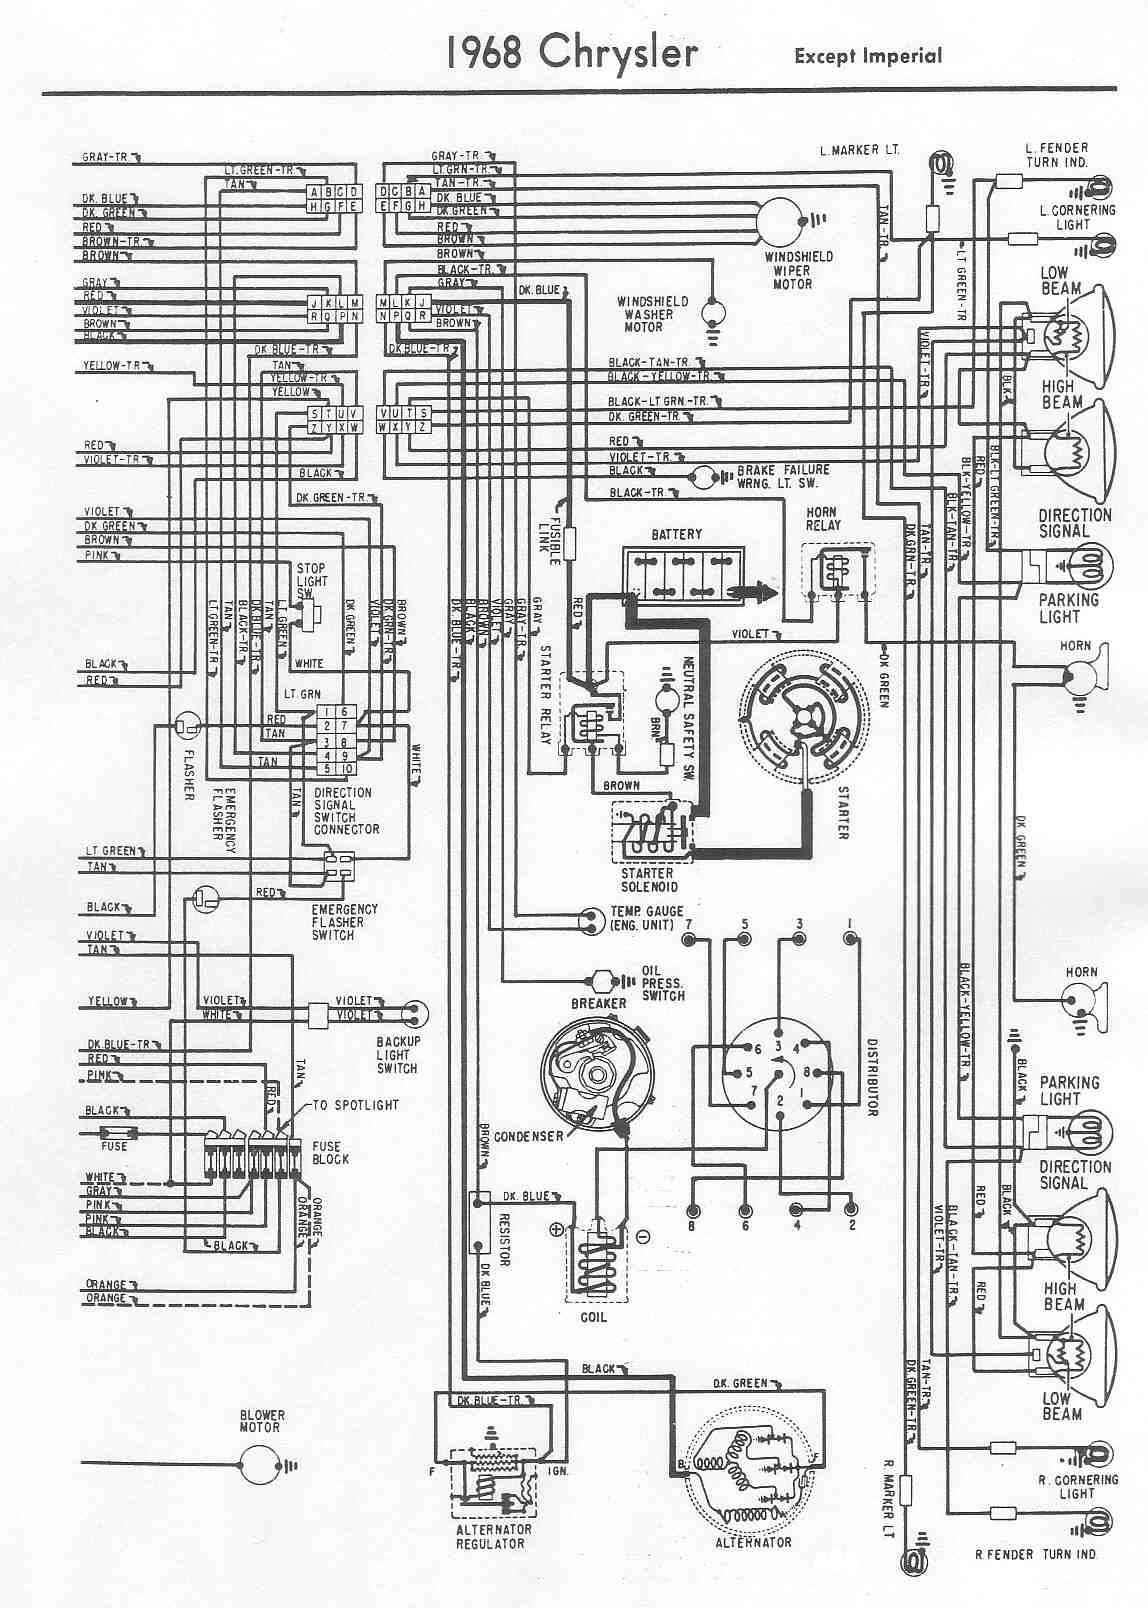 1968 Coronet Engine Wiring Diagram Diagrams 68 Impala Harness 1965 Dodge Dash Honda Replacement